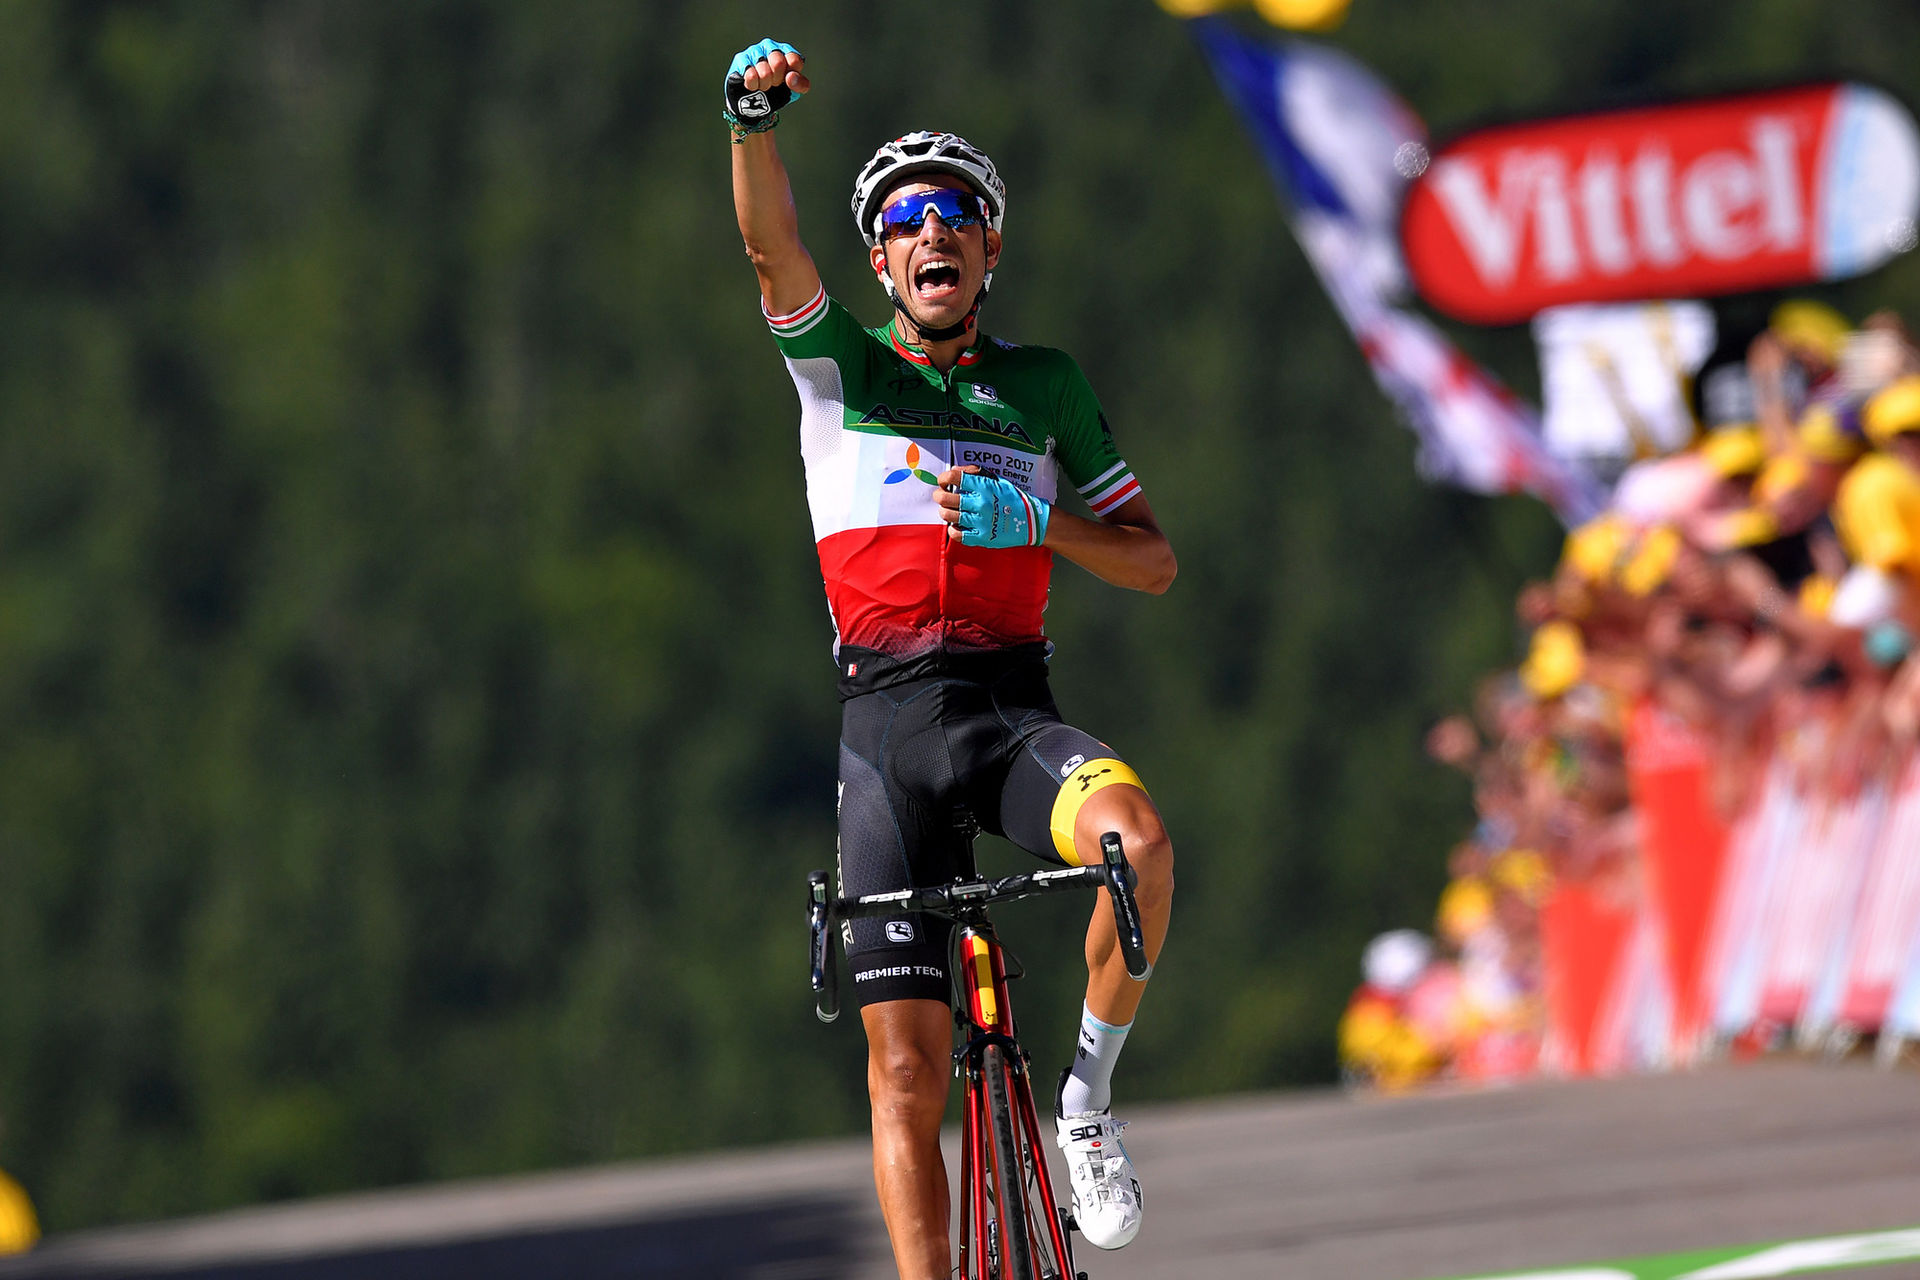 Fabio Aru, 2017 Italian National Champion